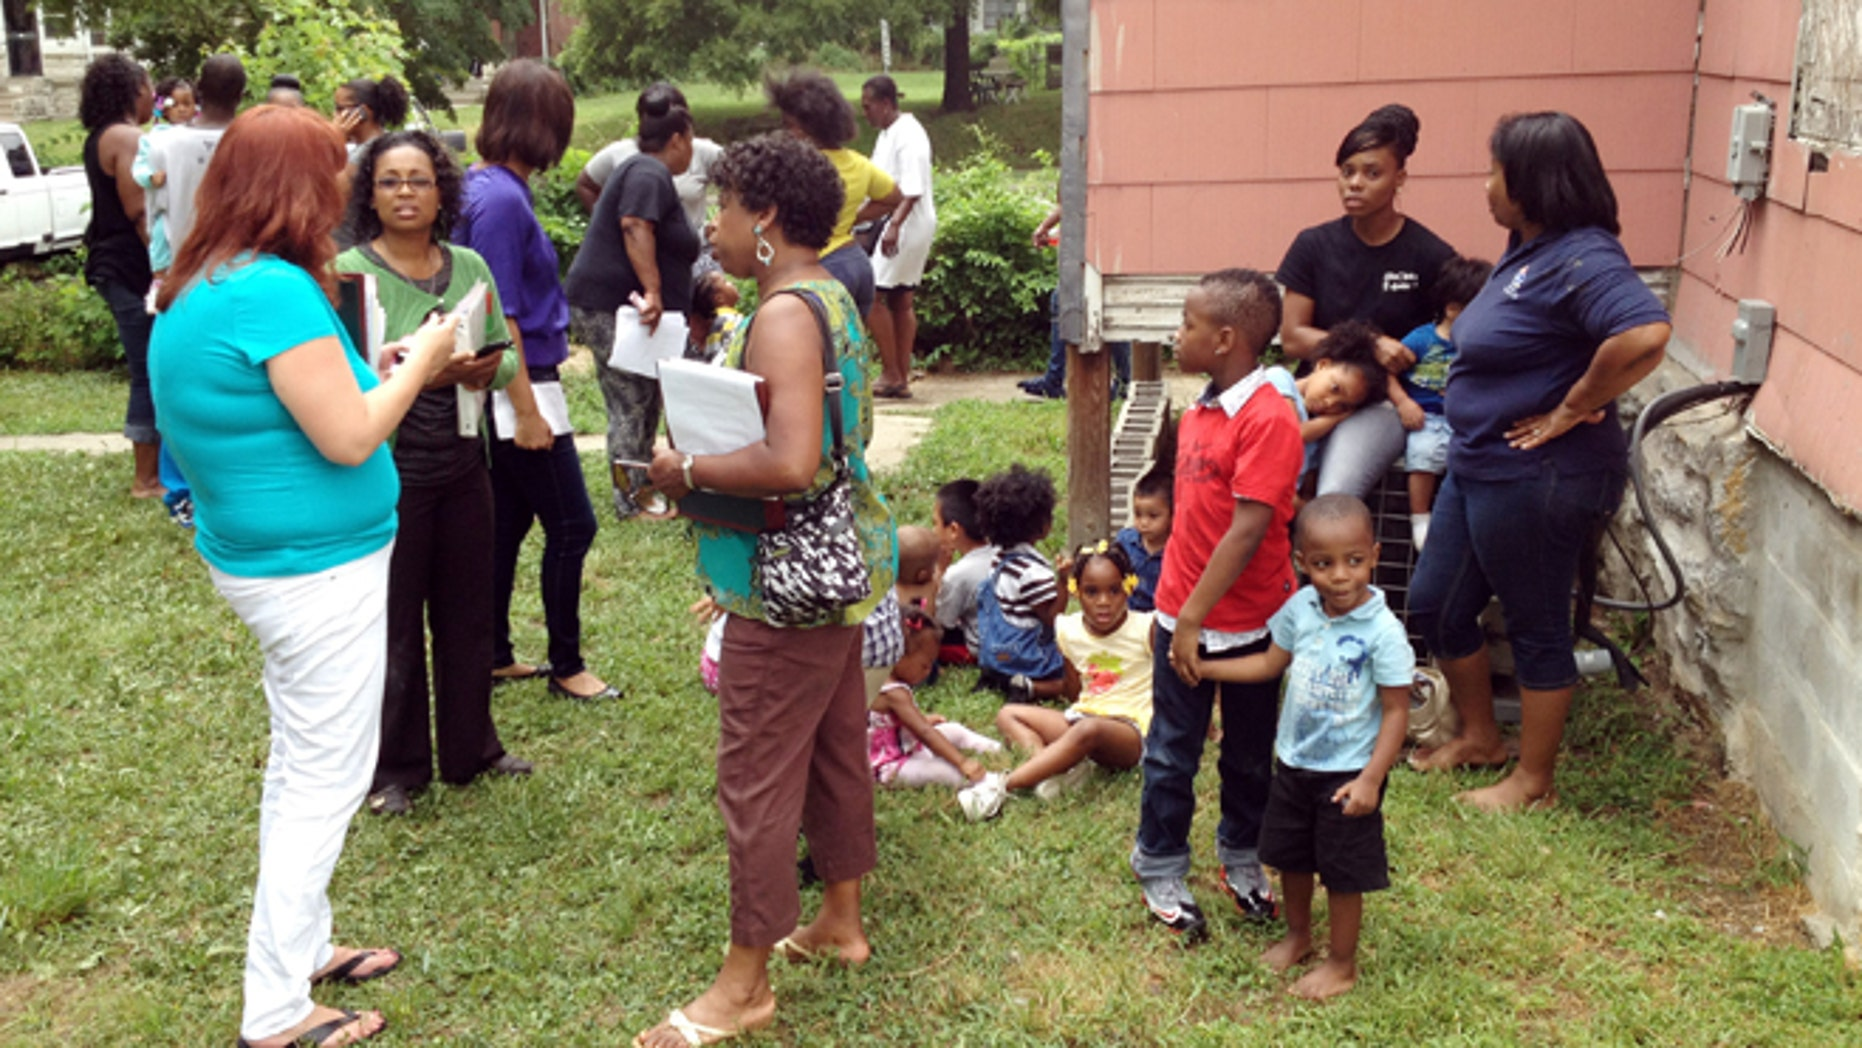 July 30, 2013: Dena Washington, middle of 3 women on left, director of the Christian Academy Child Care, stands behind a house near the center with children waiting to be picked up after a car crashed into the day care in Kansas City, Mo.